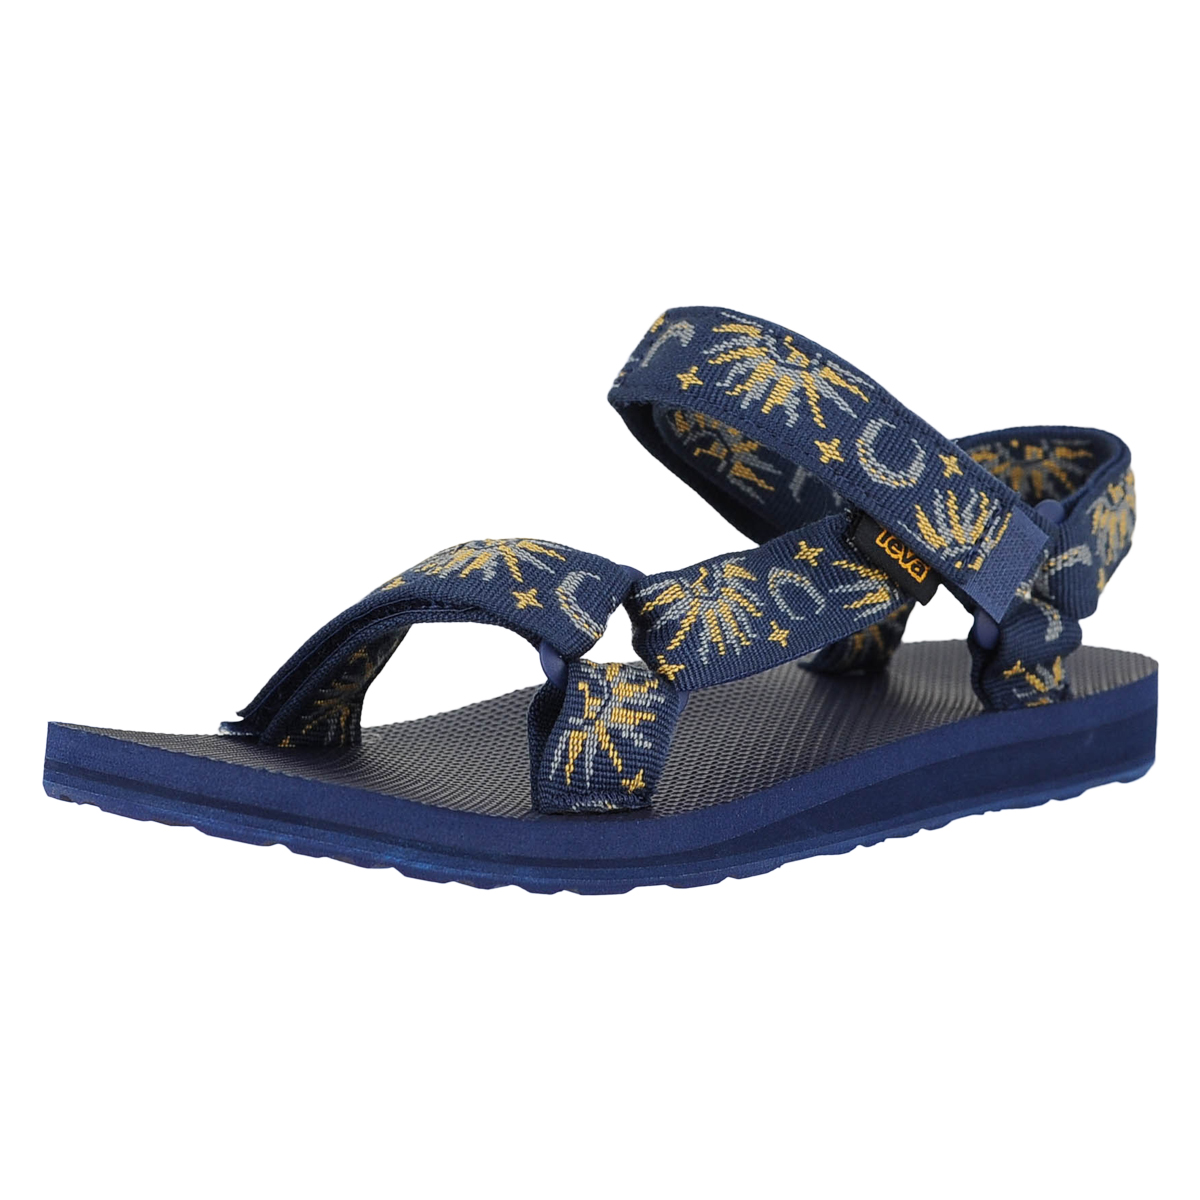 e869d006e4ba22 Details about Teva Original Universal Sun And Moon Insignia Blue Womens  Ankle Strap Size 10M